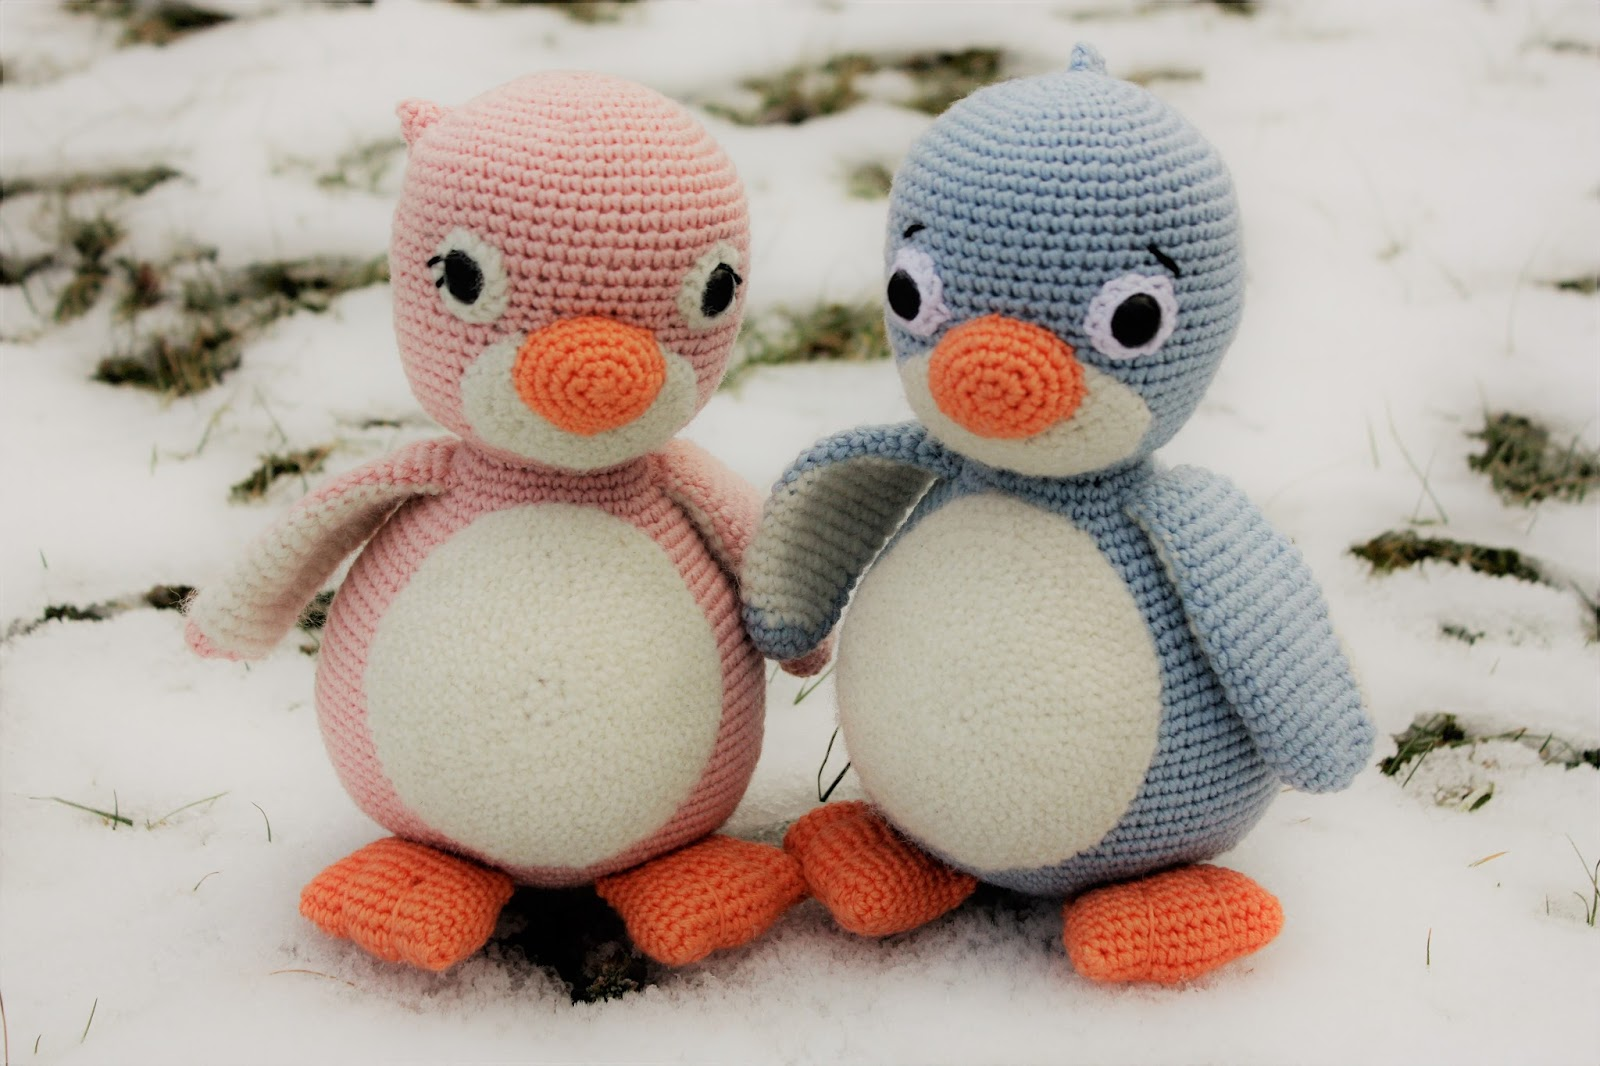 Amigurumi creations by Happyamigurumi: Amigurumi Crochet ...